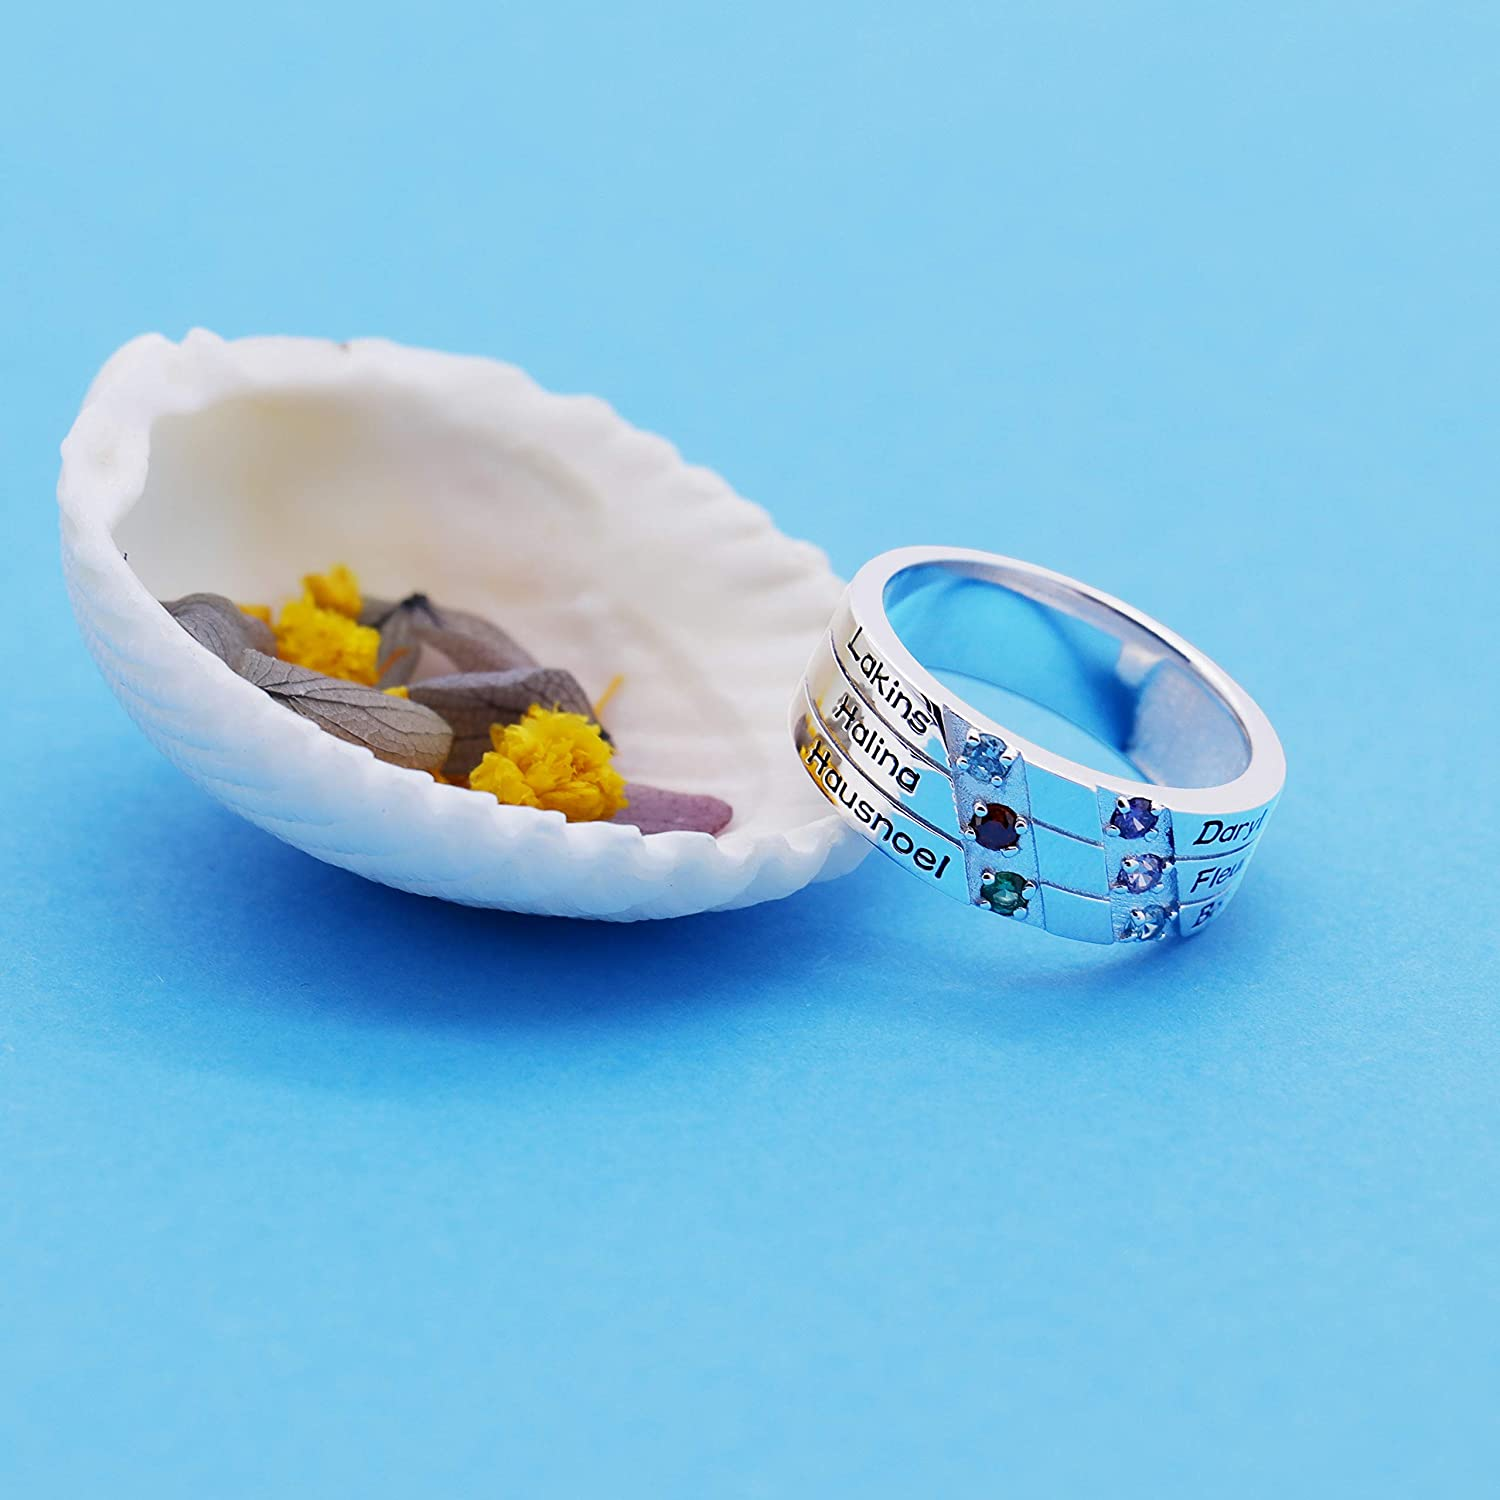 Mothers Ring Engraved Simulated Birthstone Ring 6 Stone Ring 925 Sterling Silver Personalized /& Custom Made